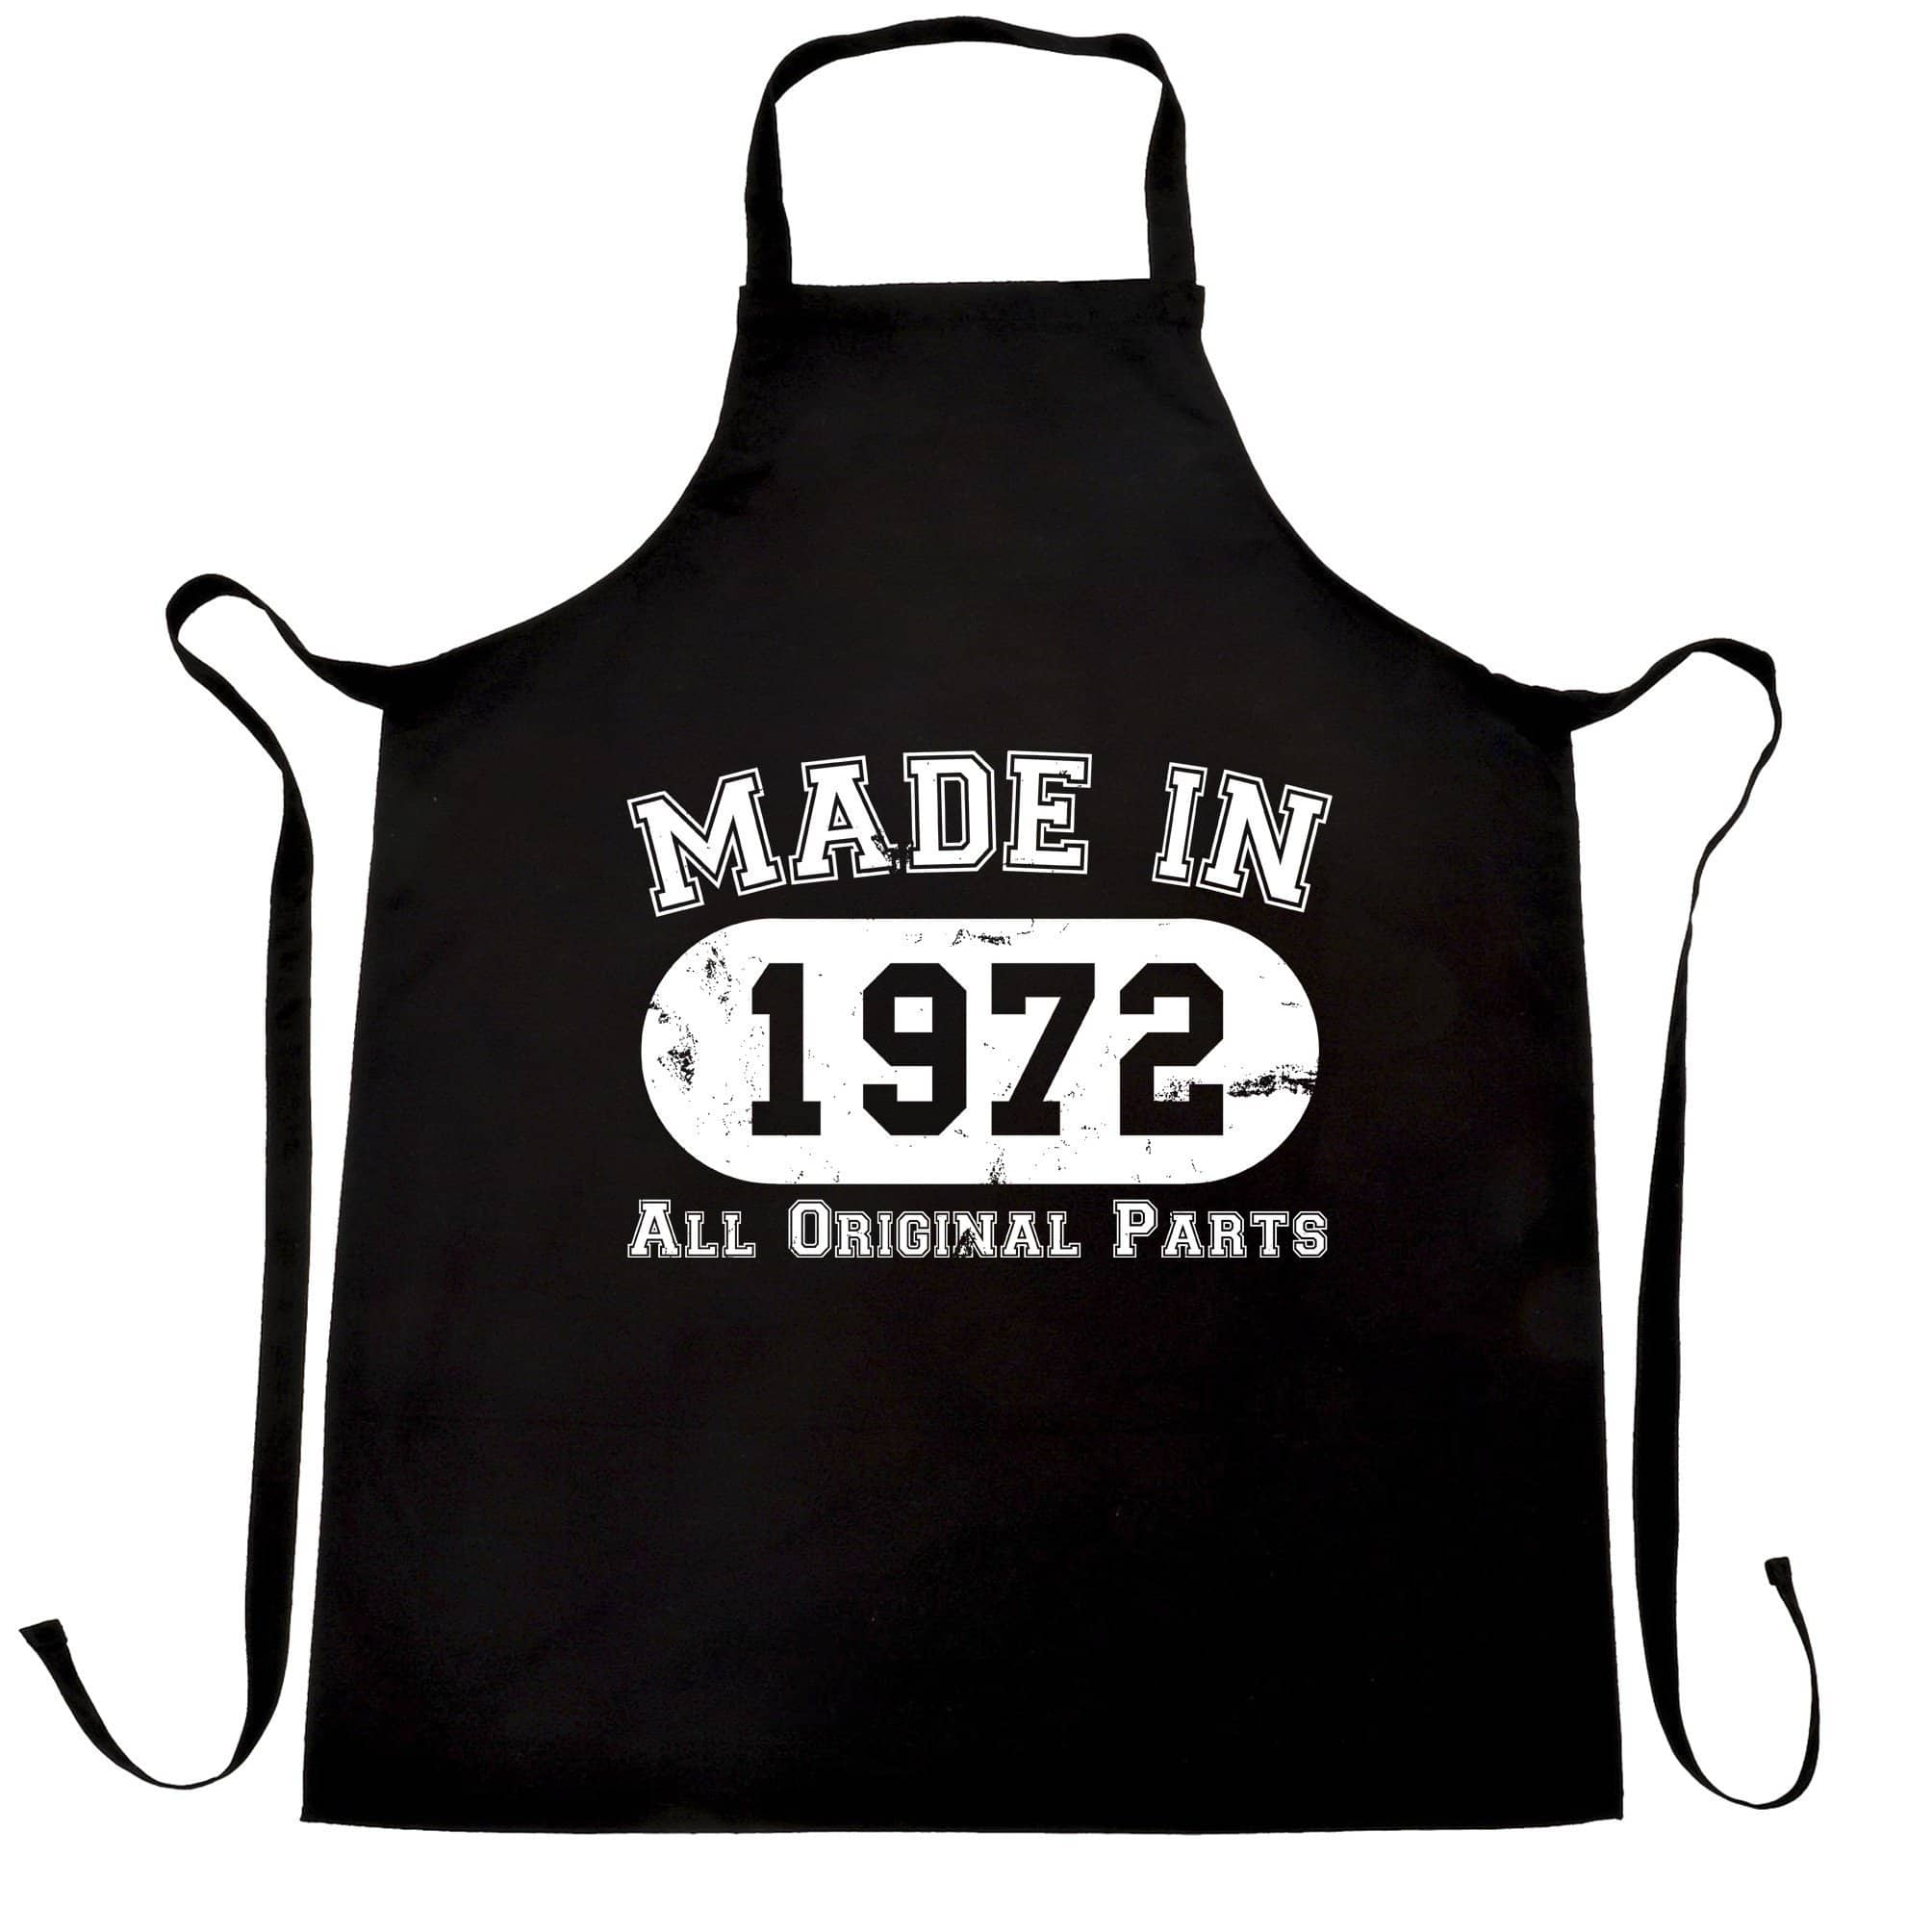 Made in 1972 All Original Parts Apron [Distressed]